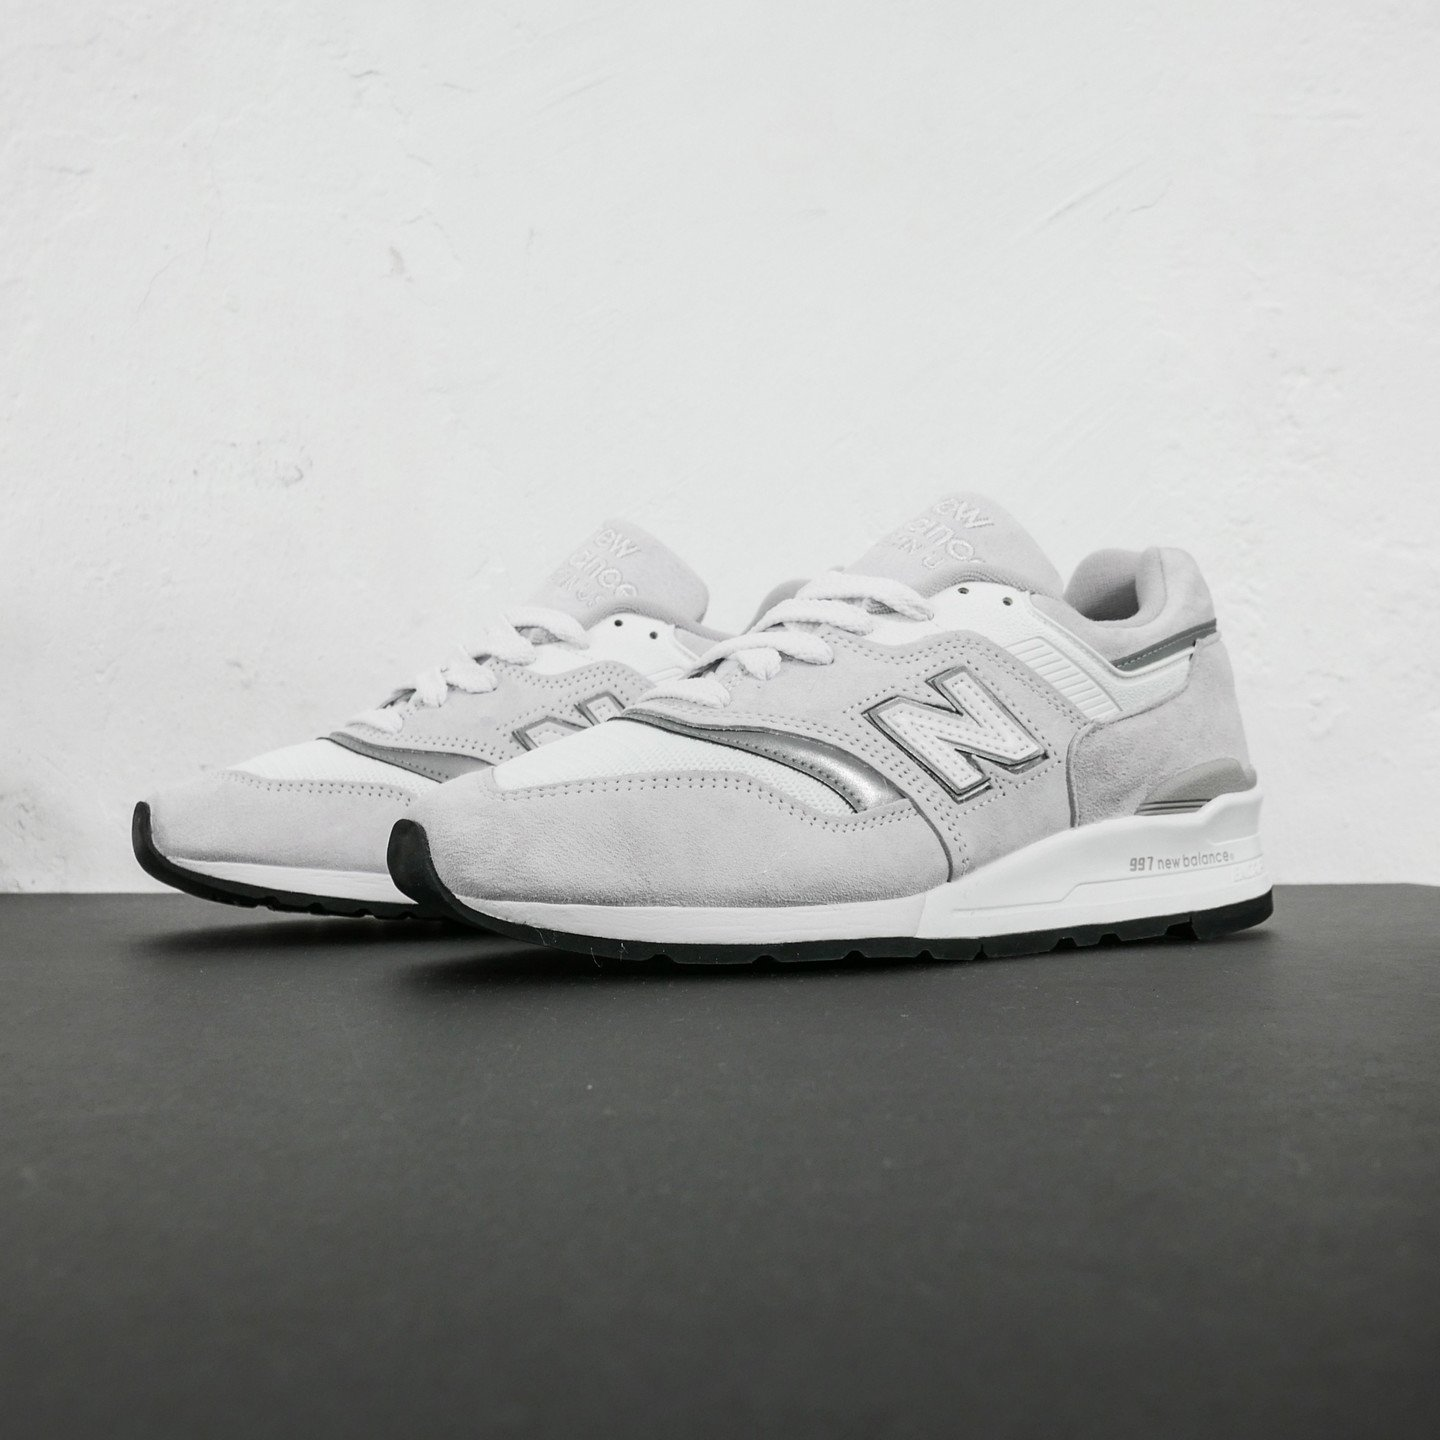 New Balance M997 - Made in USA 'Velcro N' Off White / Reflective Silver M997LBG